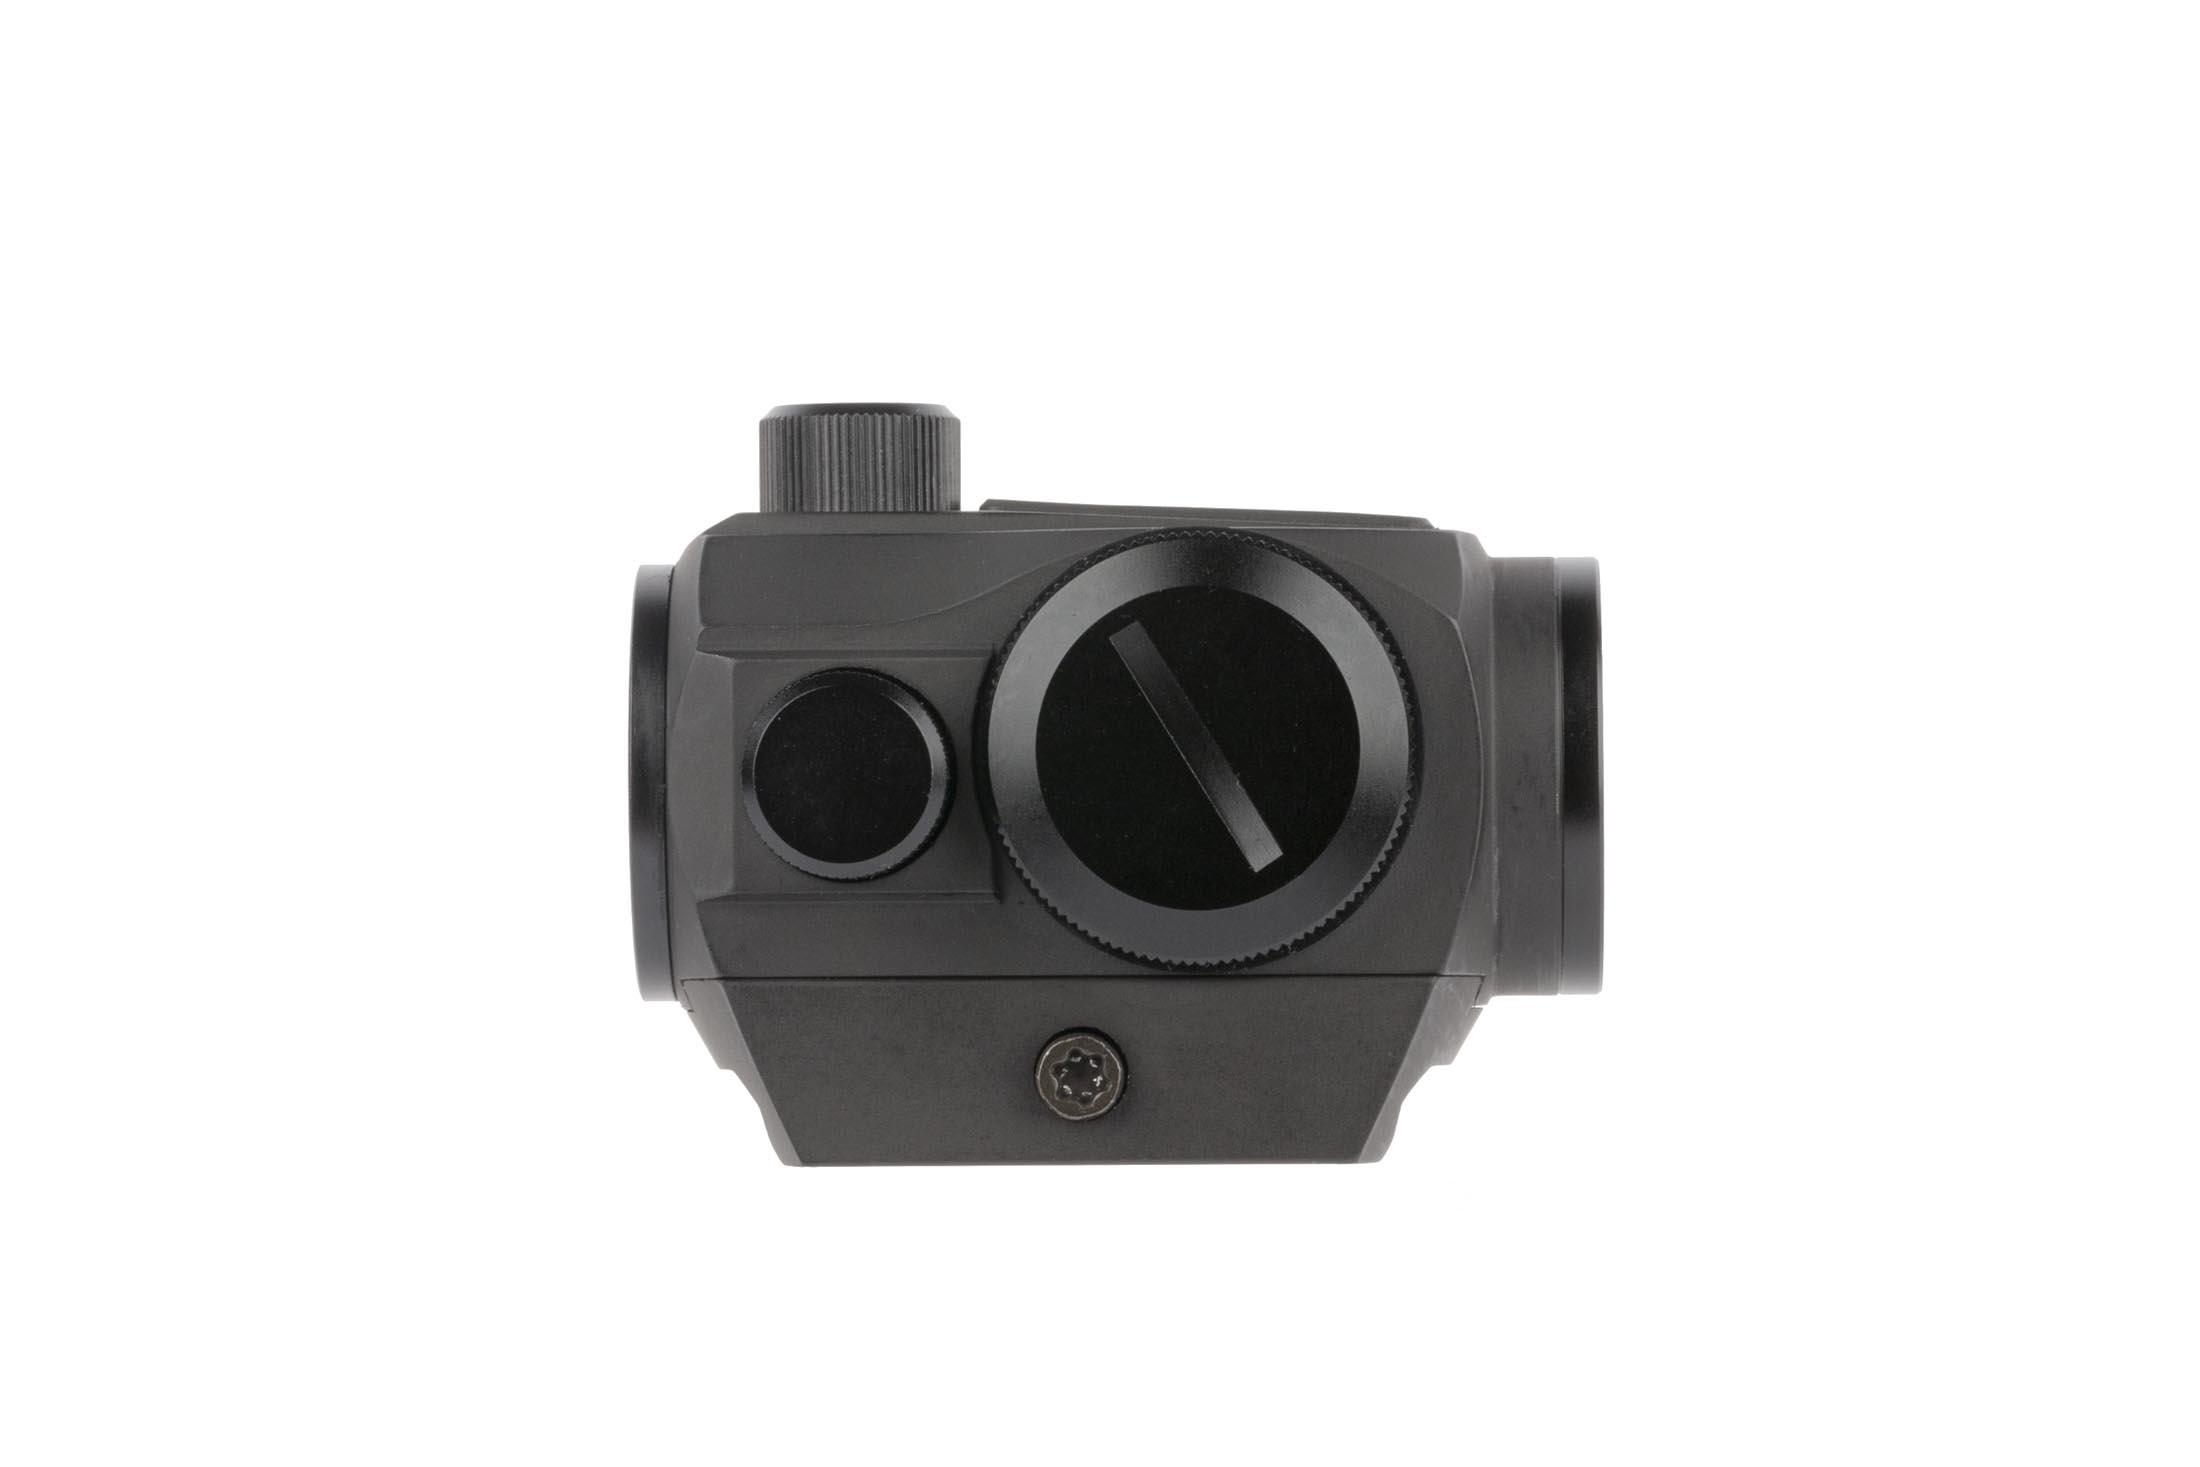 Primary arms MD-ADS advanced micro red dot sight is extremely compact at just 2.4 inches long and 4 oz in weight